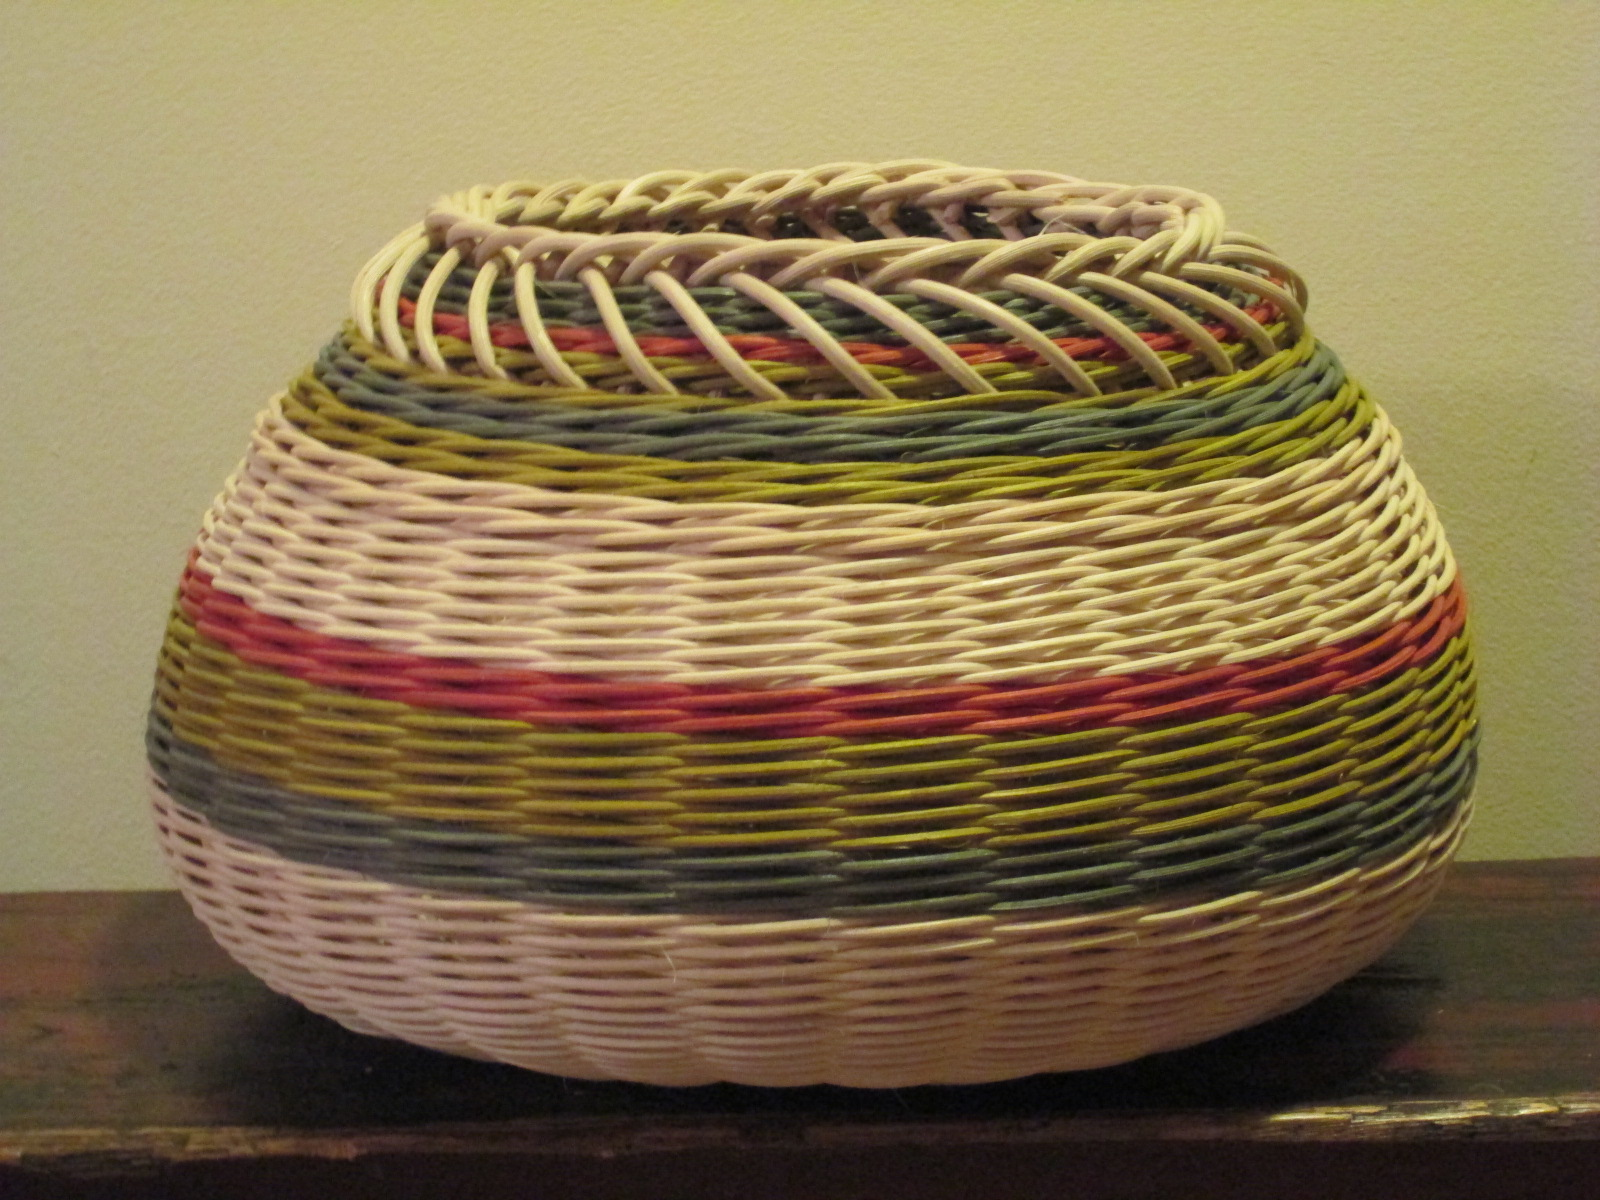 Bamboo Basket Making Supplies : A whole lot of weaving making baskets for the joy it